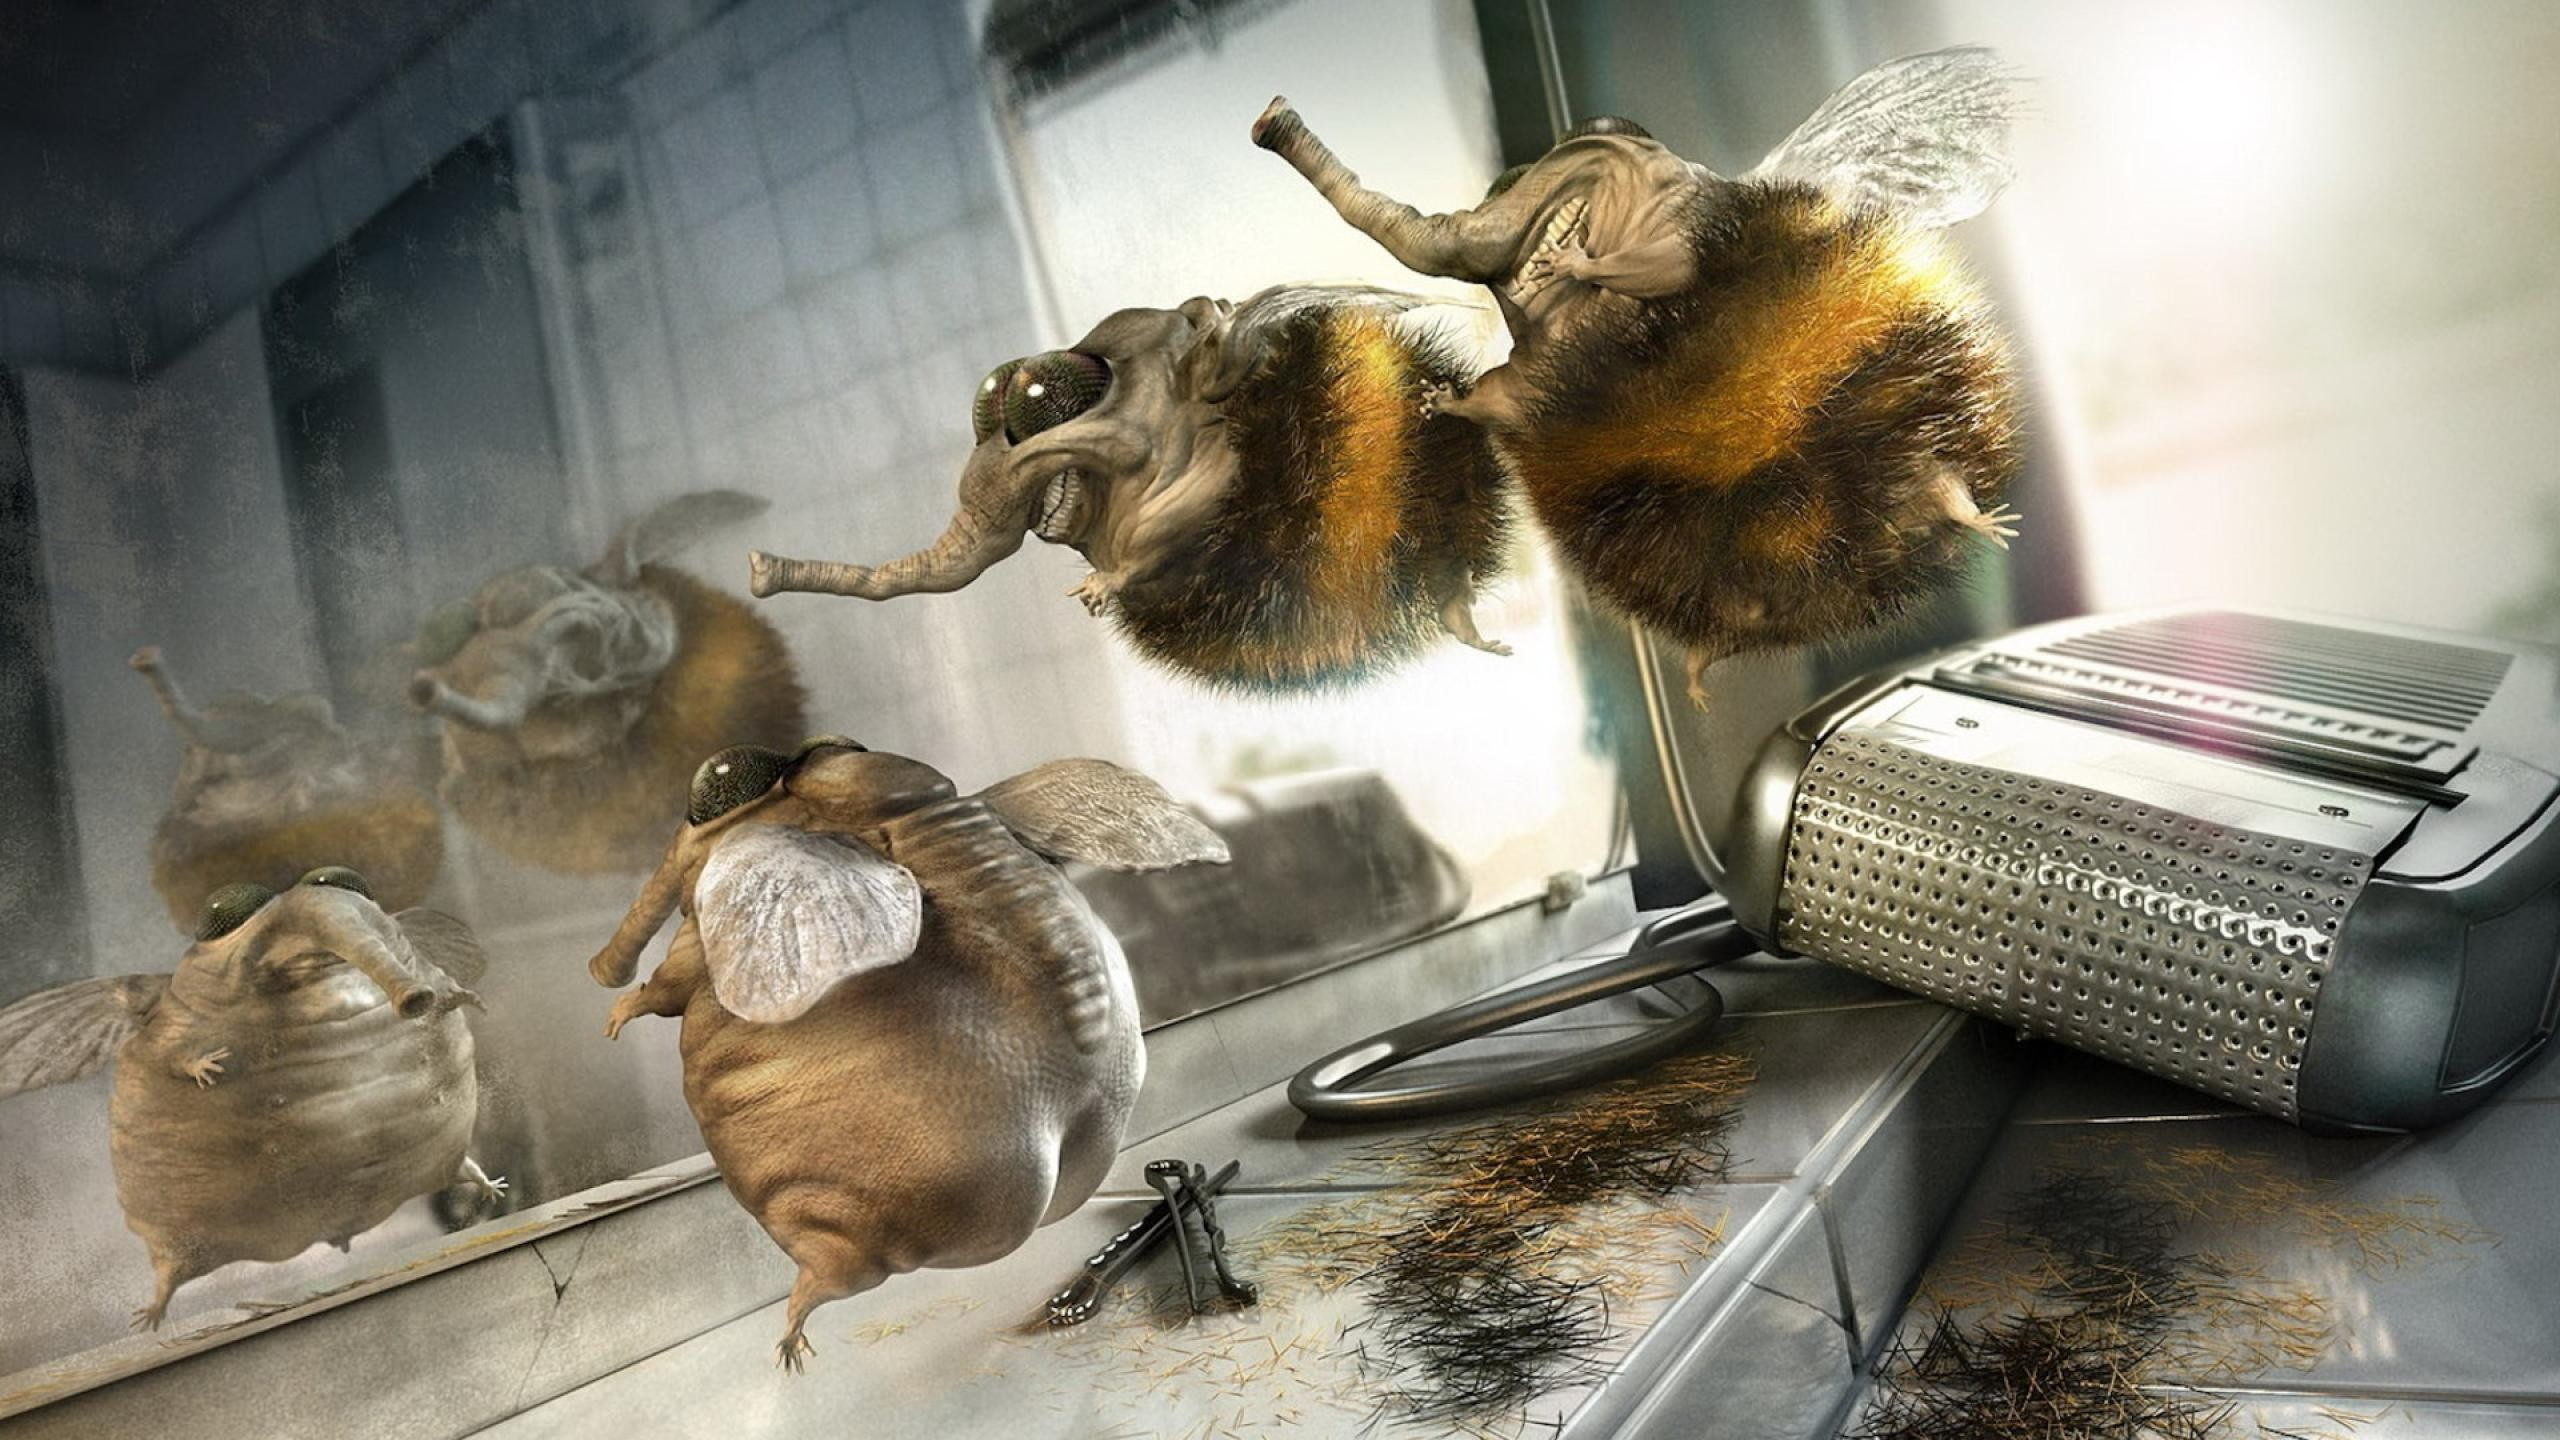 Funny Animal Wallpapers Download HD Wallpapers 2560x1440